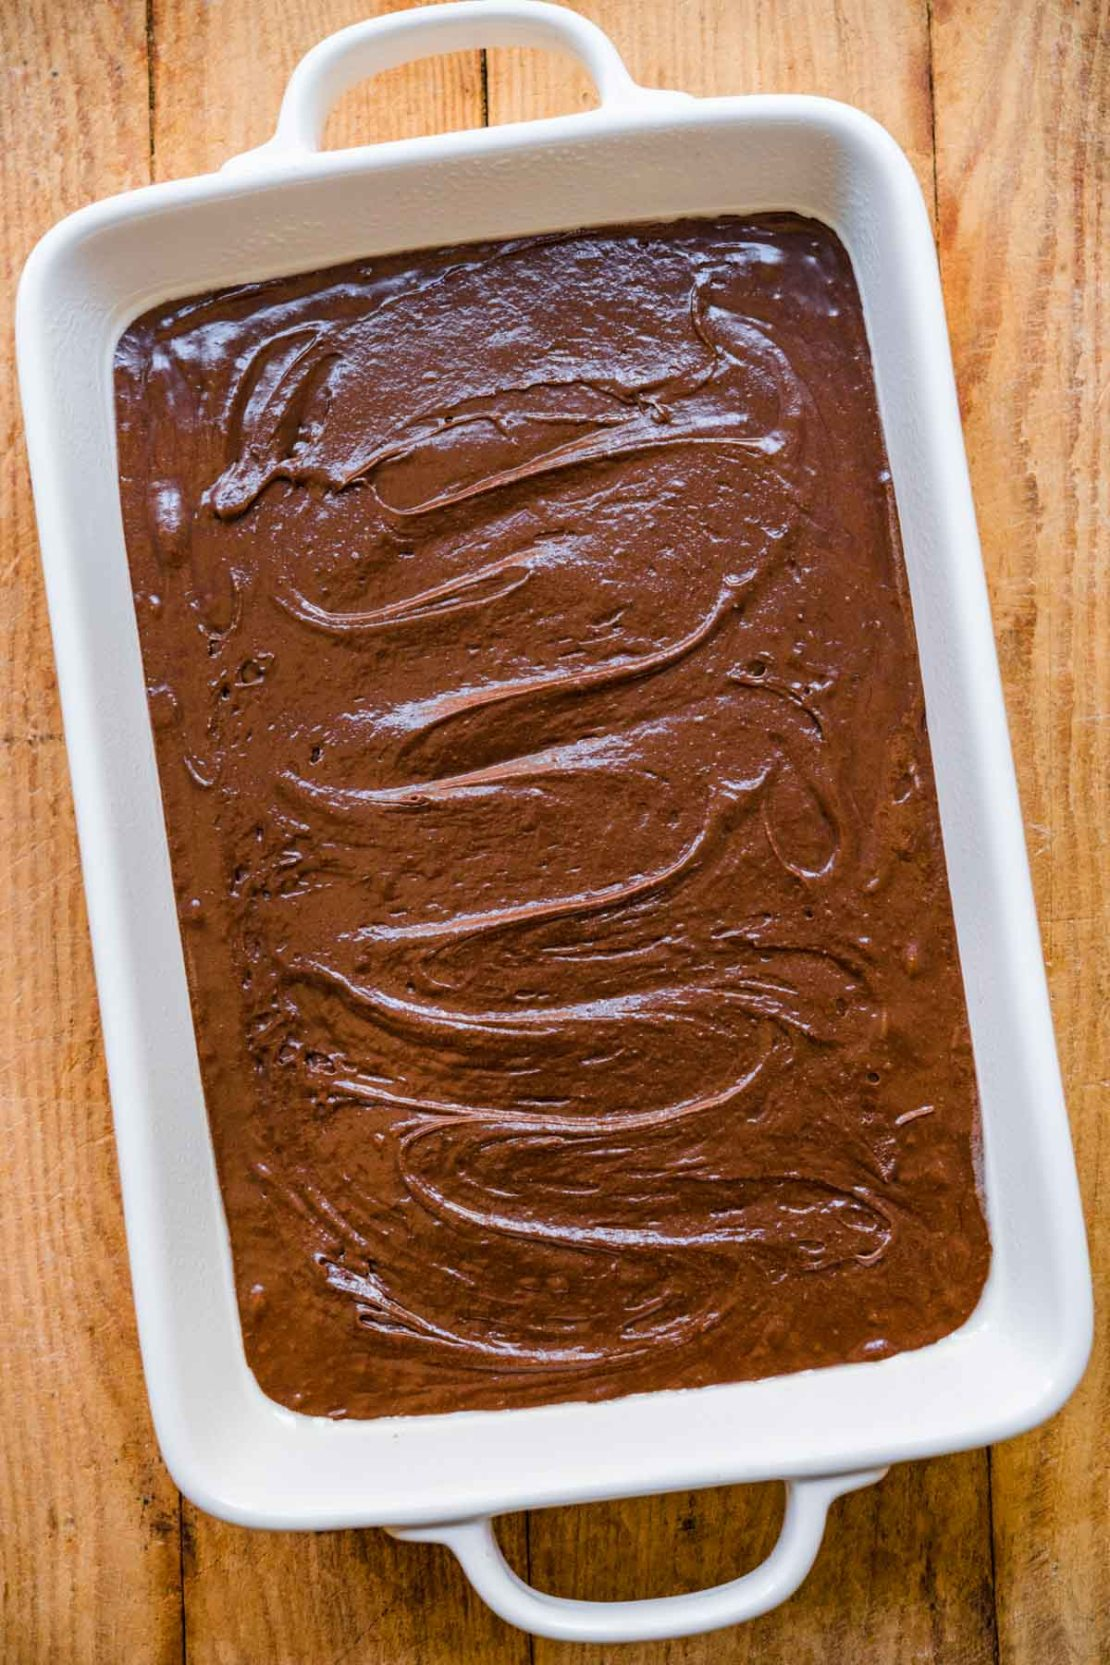 Brownie batter in baking dish for Crispy Chocolate Peanut Butter Brownie Bars